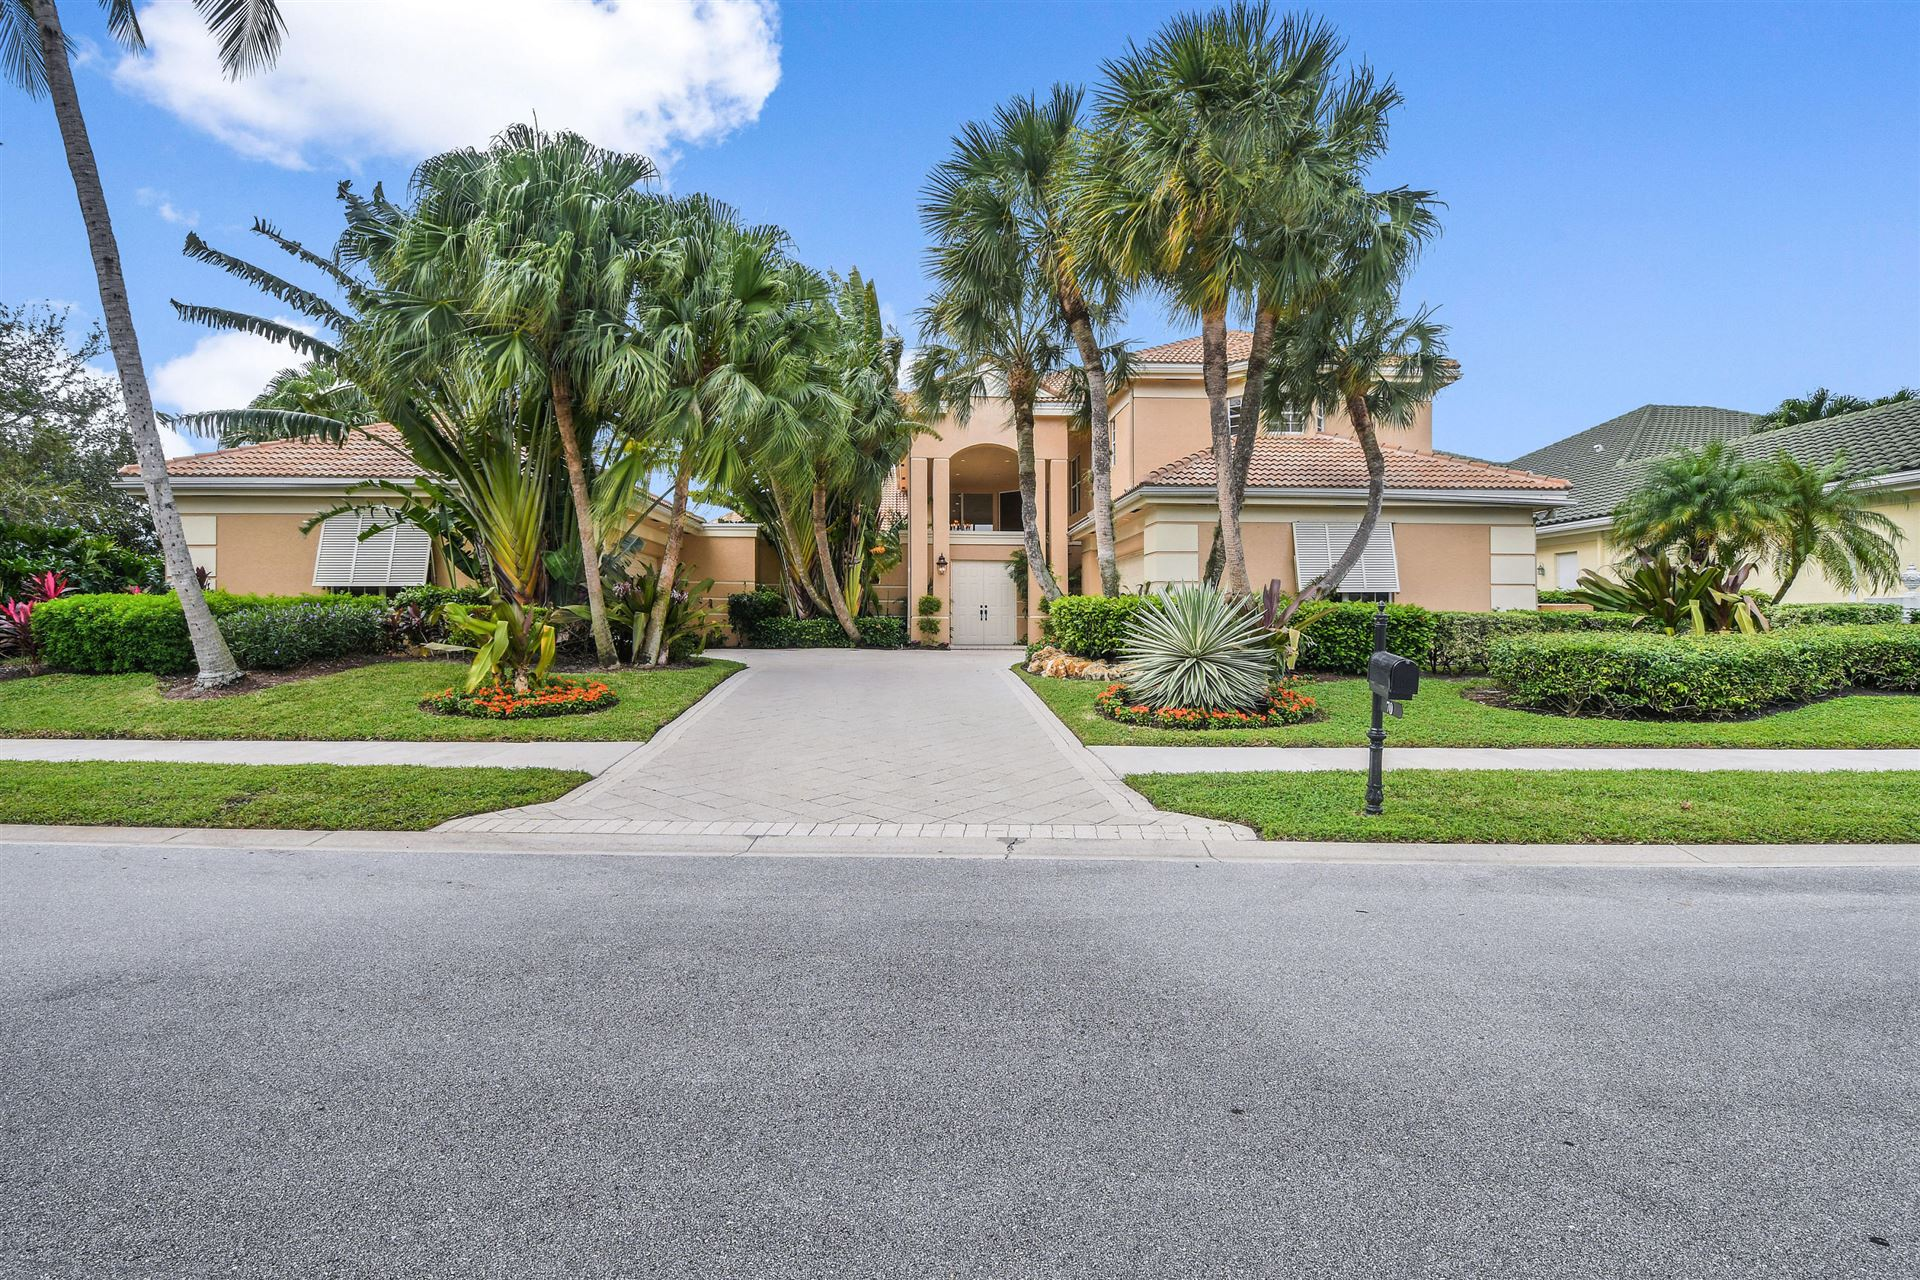 Photo of 70 St George Place, Palm Beach Gardens, FL 33418 (MLS # RX-10675061)